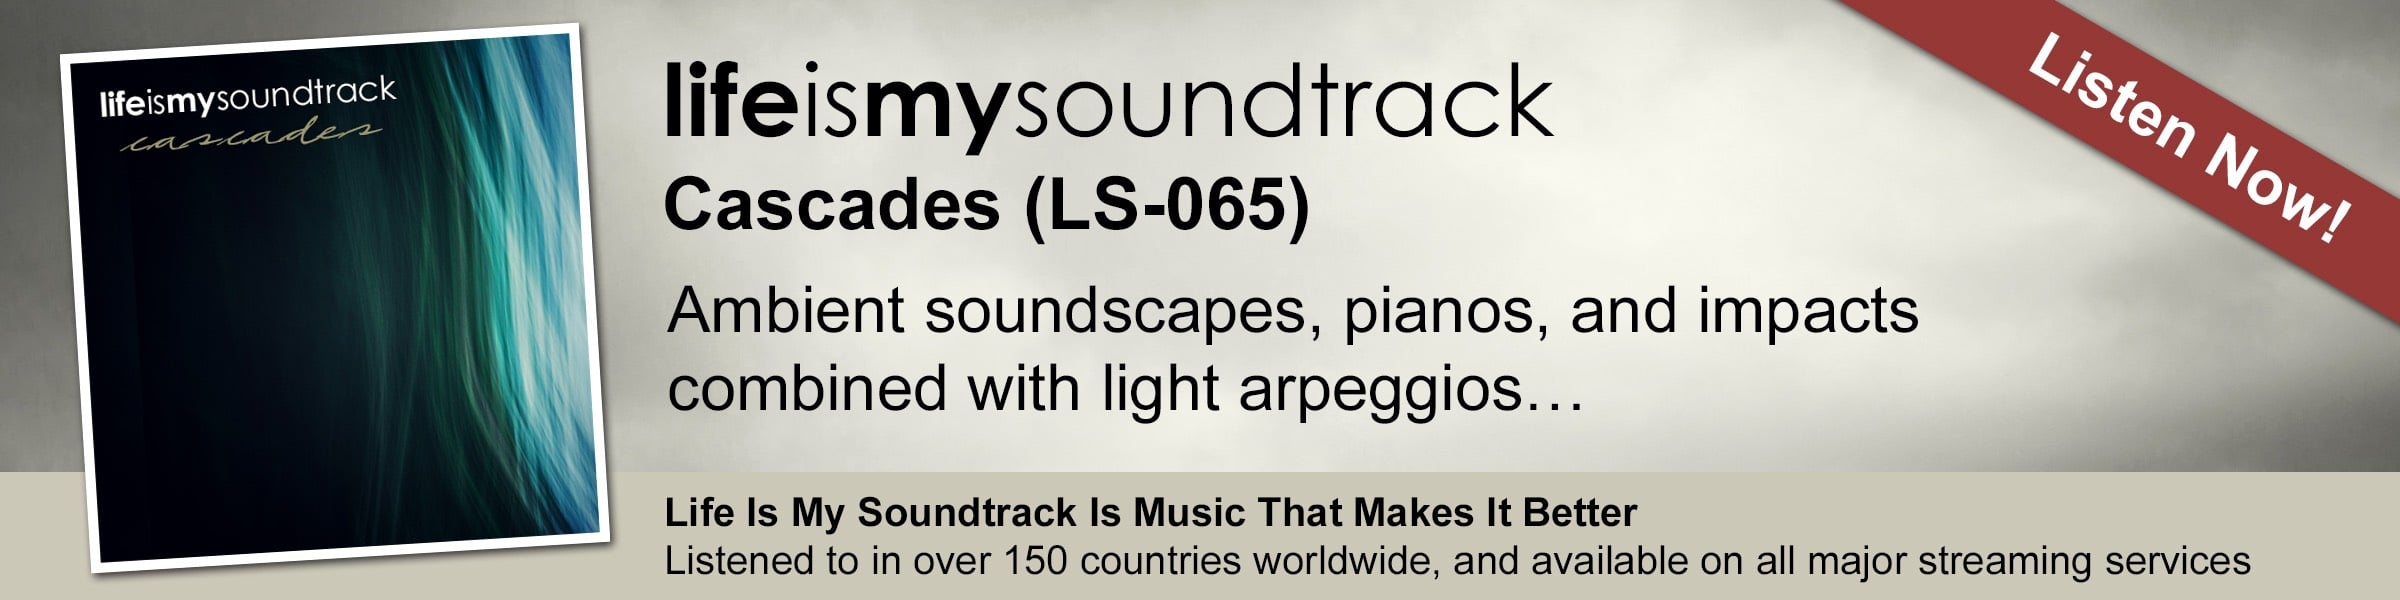 The Life Is My Soundtrack album Cascades - Ambient soundscapes, pianos, and impacts combined with light arpeggios